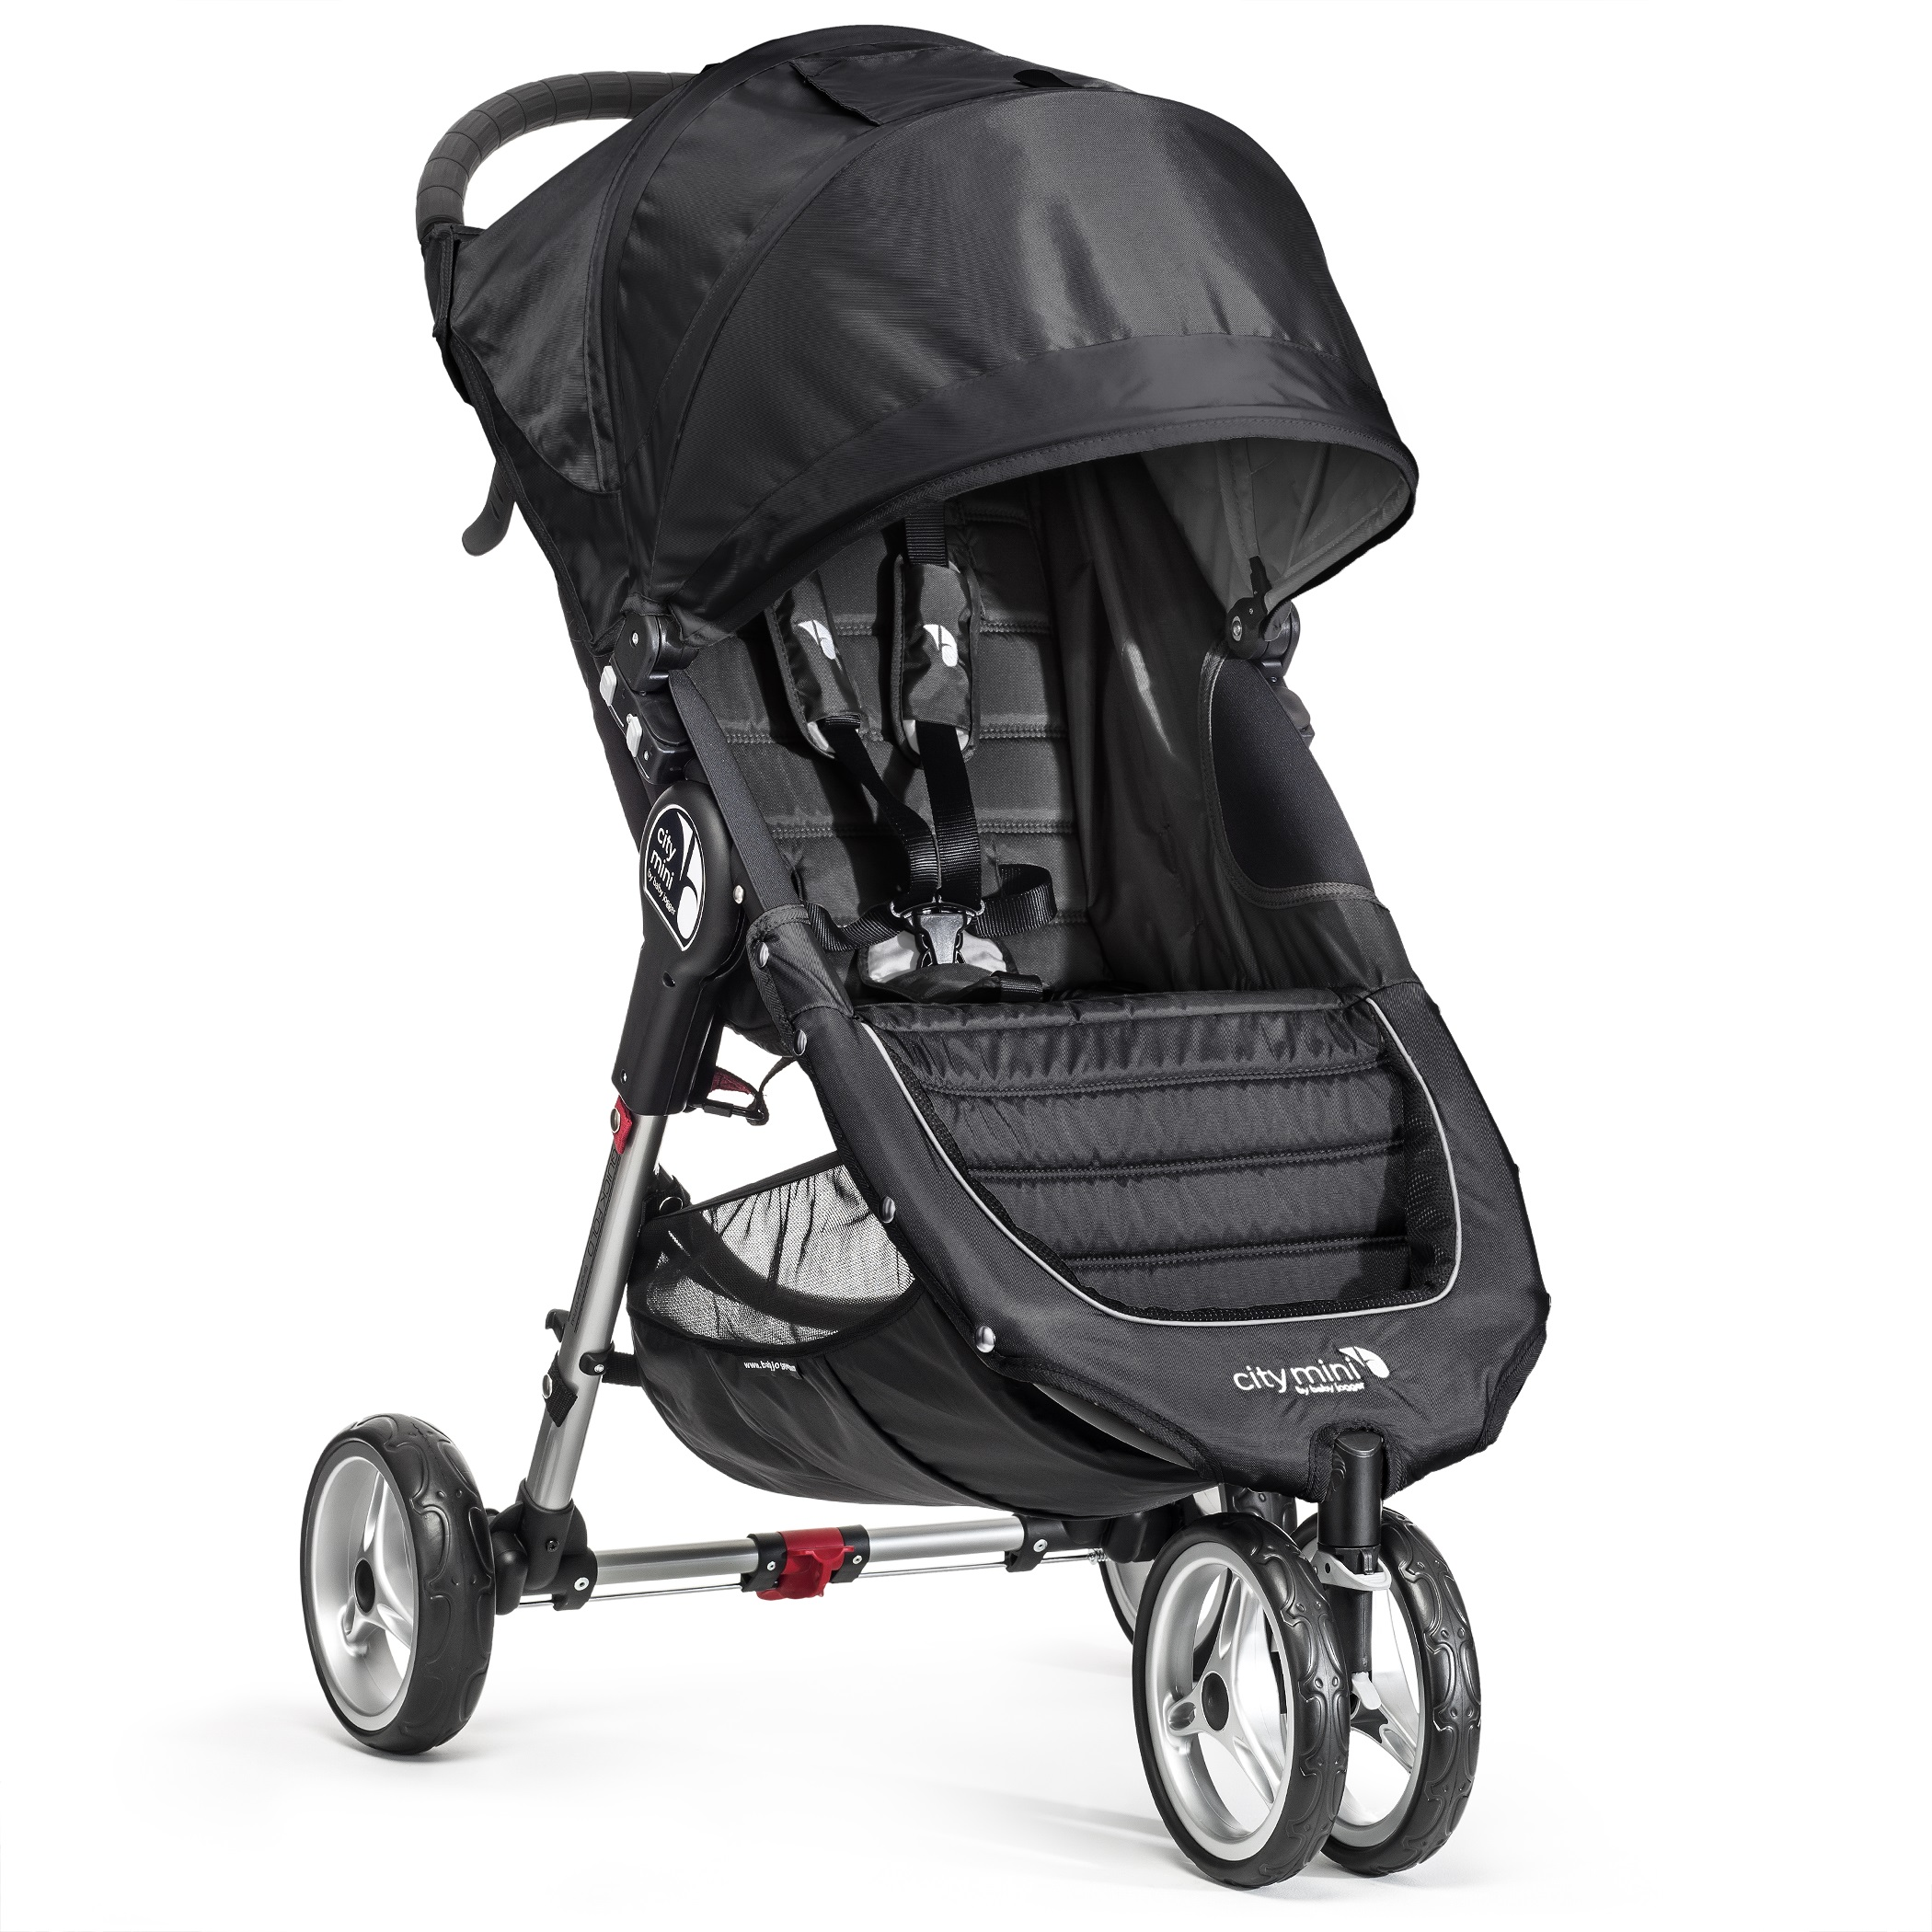 Find a great selection of Baby Jogger strollers & accessories at tubidyindir.ga Shop for strollers, trays, seat kits & more. Totally free shipping & returns.